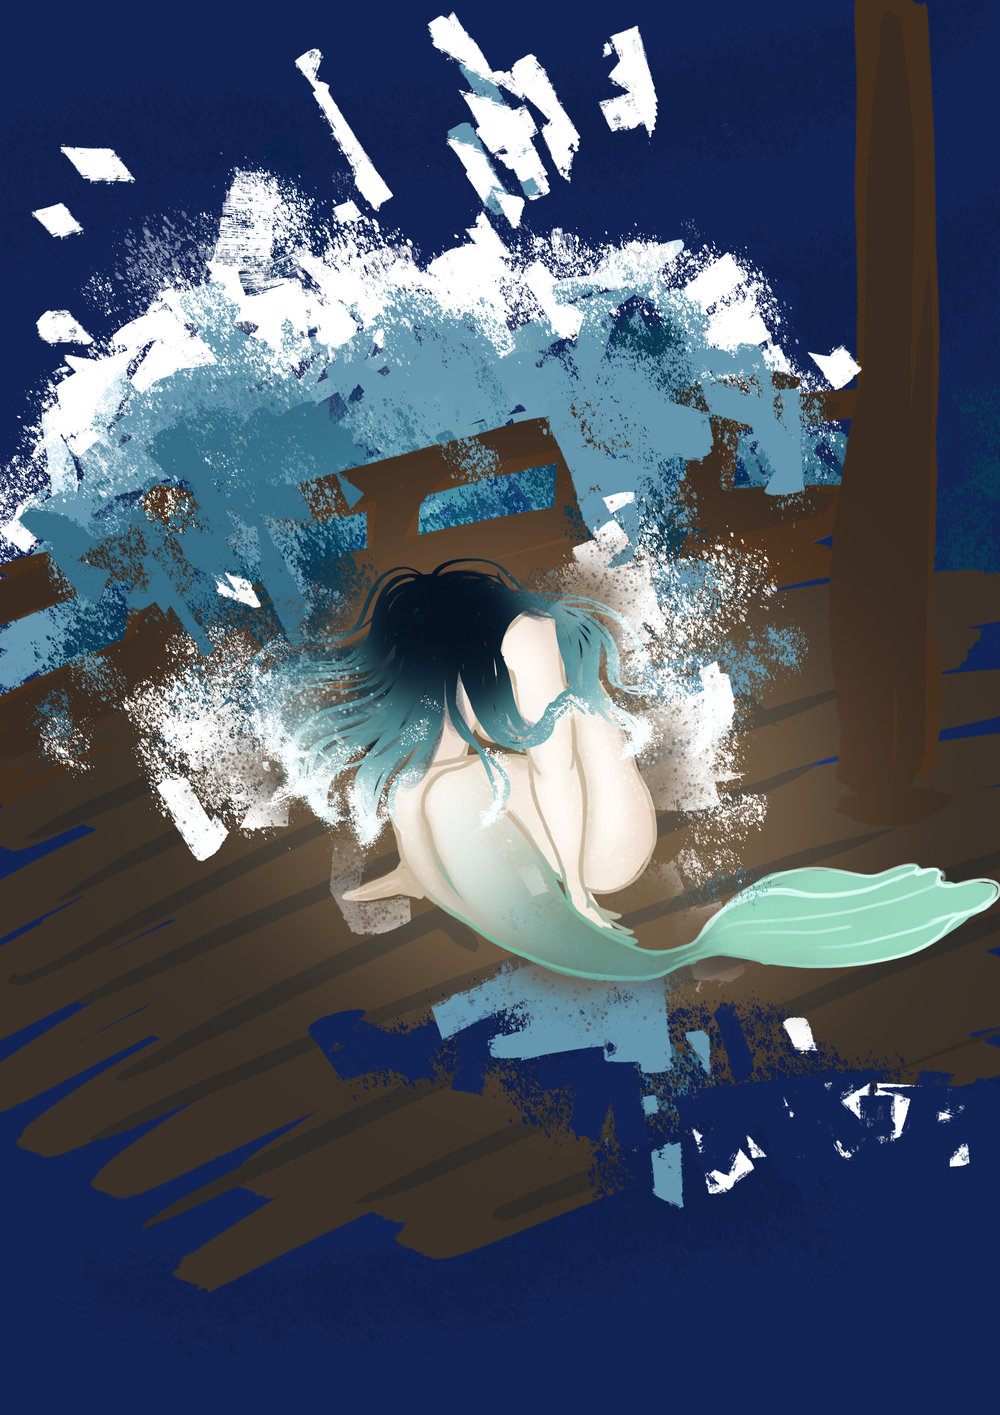 - This is the first scene I visualized when I got the idea for the story. This is The Sea's first appearance when she is washed aboard the the ship by a huge wave amidst a raging storm. This scene is the centerpiece of the story and should feel powerful and dramatic. However, here I drew her as a mermaid, but this has changed. I don't want to bring in mermaid references because I think it will muddle her character. She should look mysterious and powerful enough to unsettle a pirate crew, but still beautiful enough to intrigue the Captain. This was why I had the idea of a mermaid to being with because they are beautiful, but still something to fear and if sailors saw a mermaid they would be scared and try to plug their ears as to not succumb to her song. However, as I said, I think it might just confuse the message.